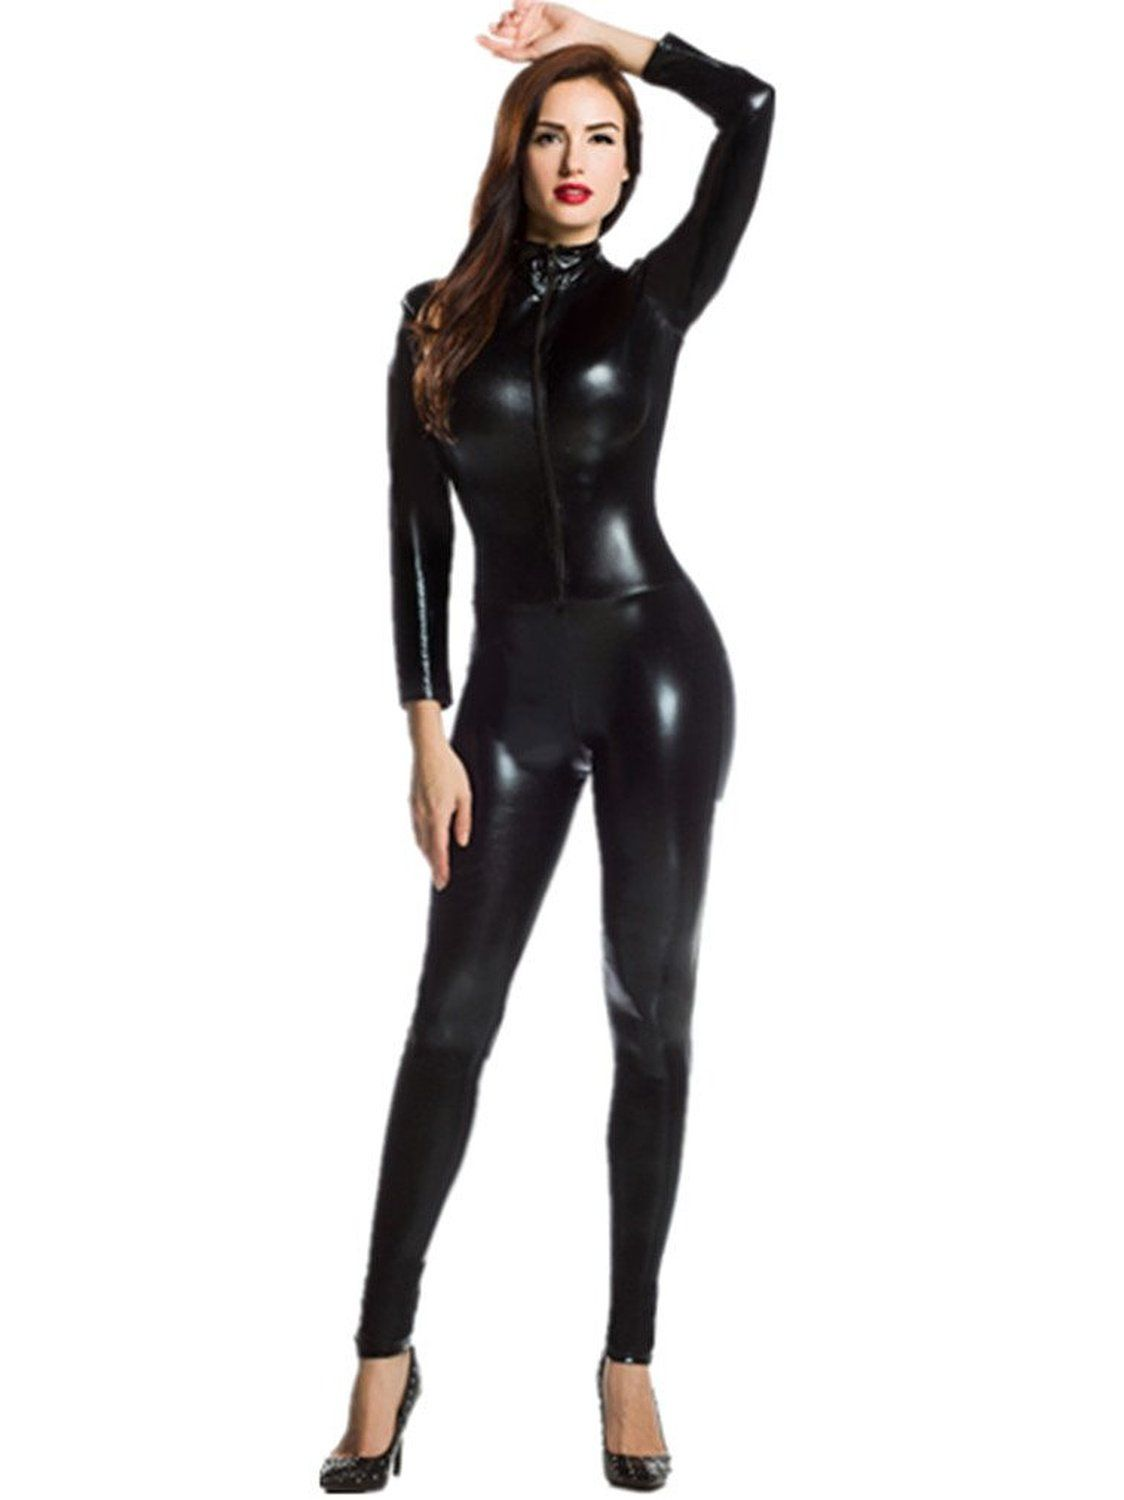 ed3105a6ca54 Amazon.com  Amour- Catsuit Women Bodysuit Zip up Clubwear Stripper (Regular  Size